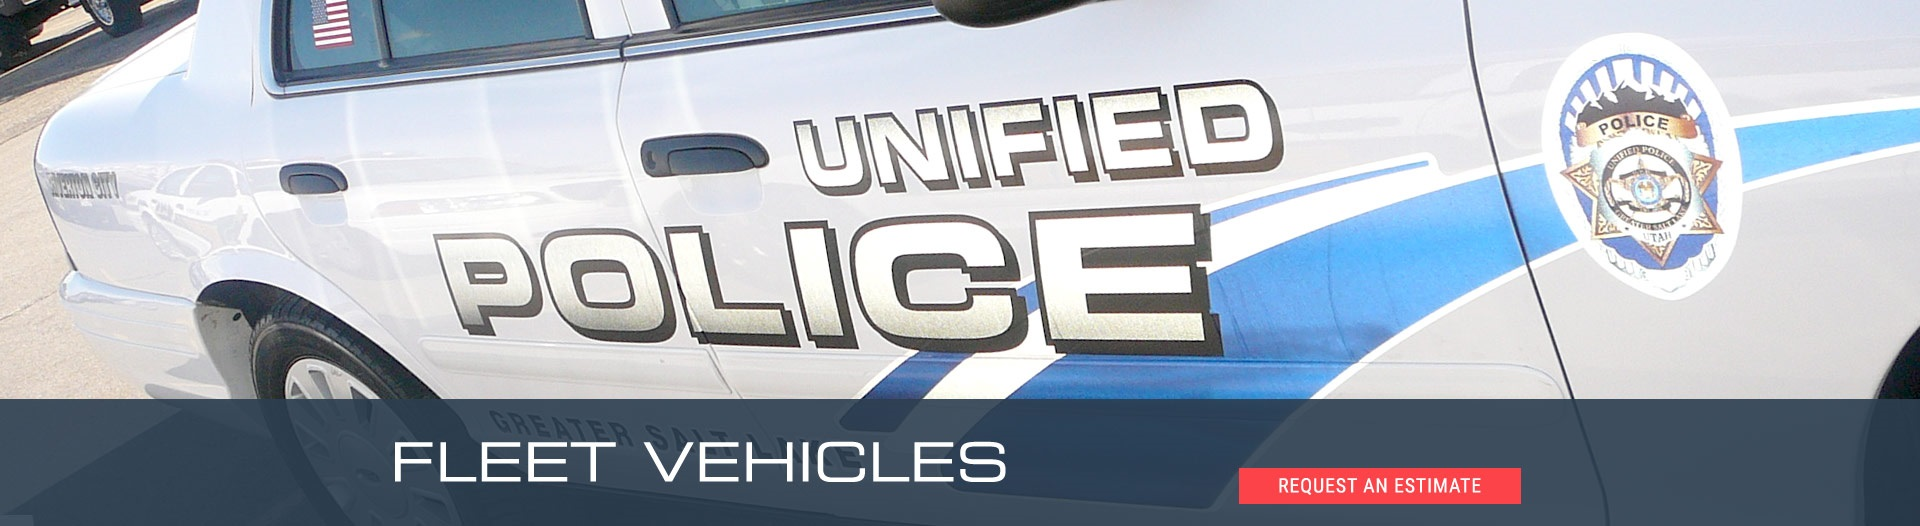 Vehicle Wrap for the Unified Police Cars